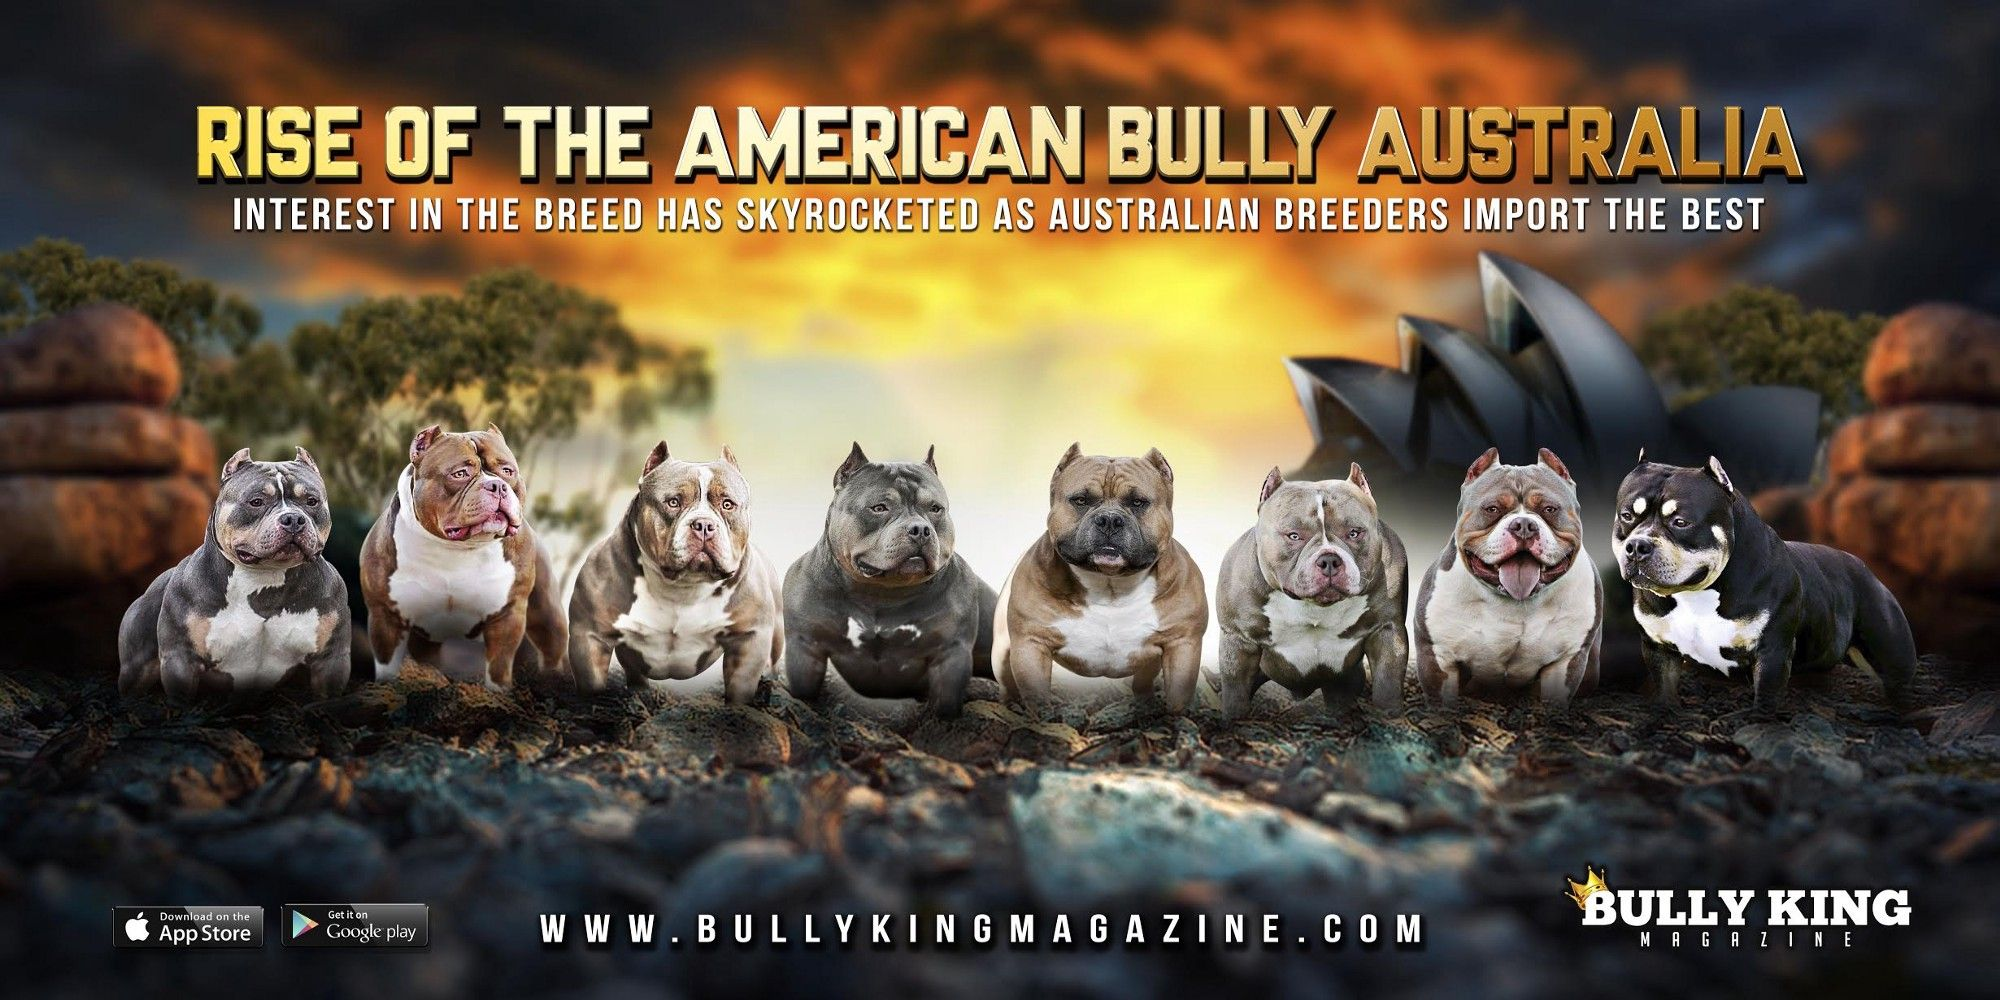 Let S Start This Out By Stating That As A Magazine Bully King Supports All Of The Bully Breeds Along With Their Various C In 2020 American Bully Bully Breeds Bullying